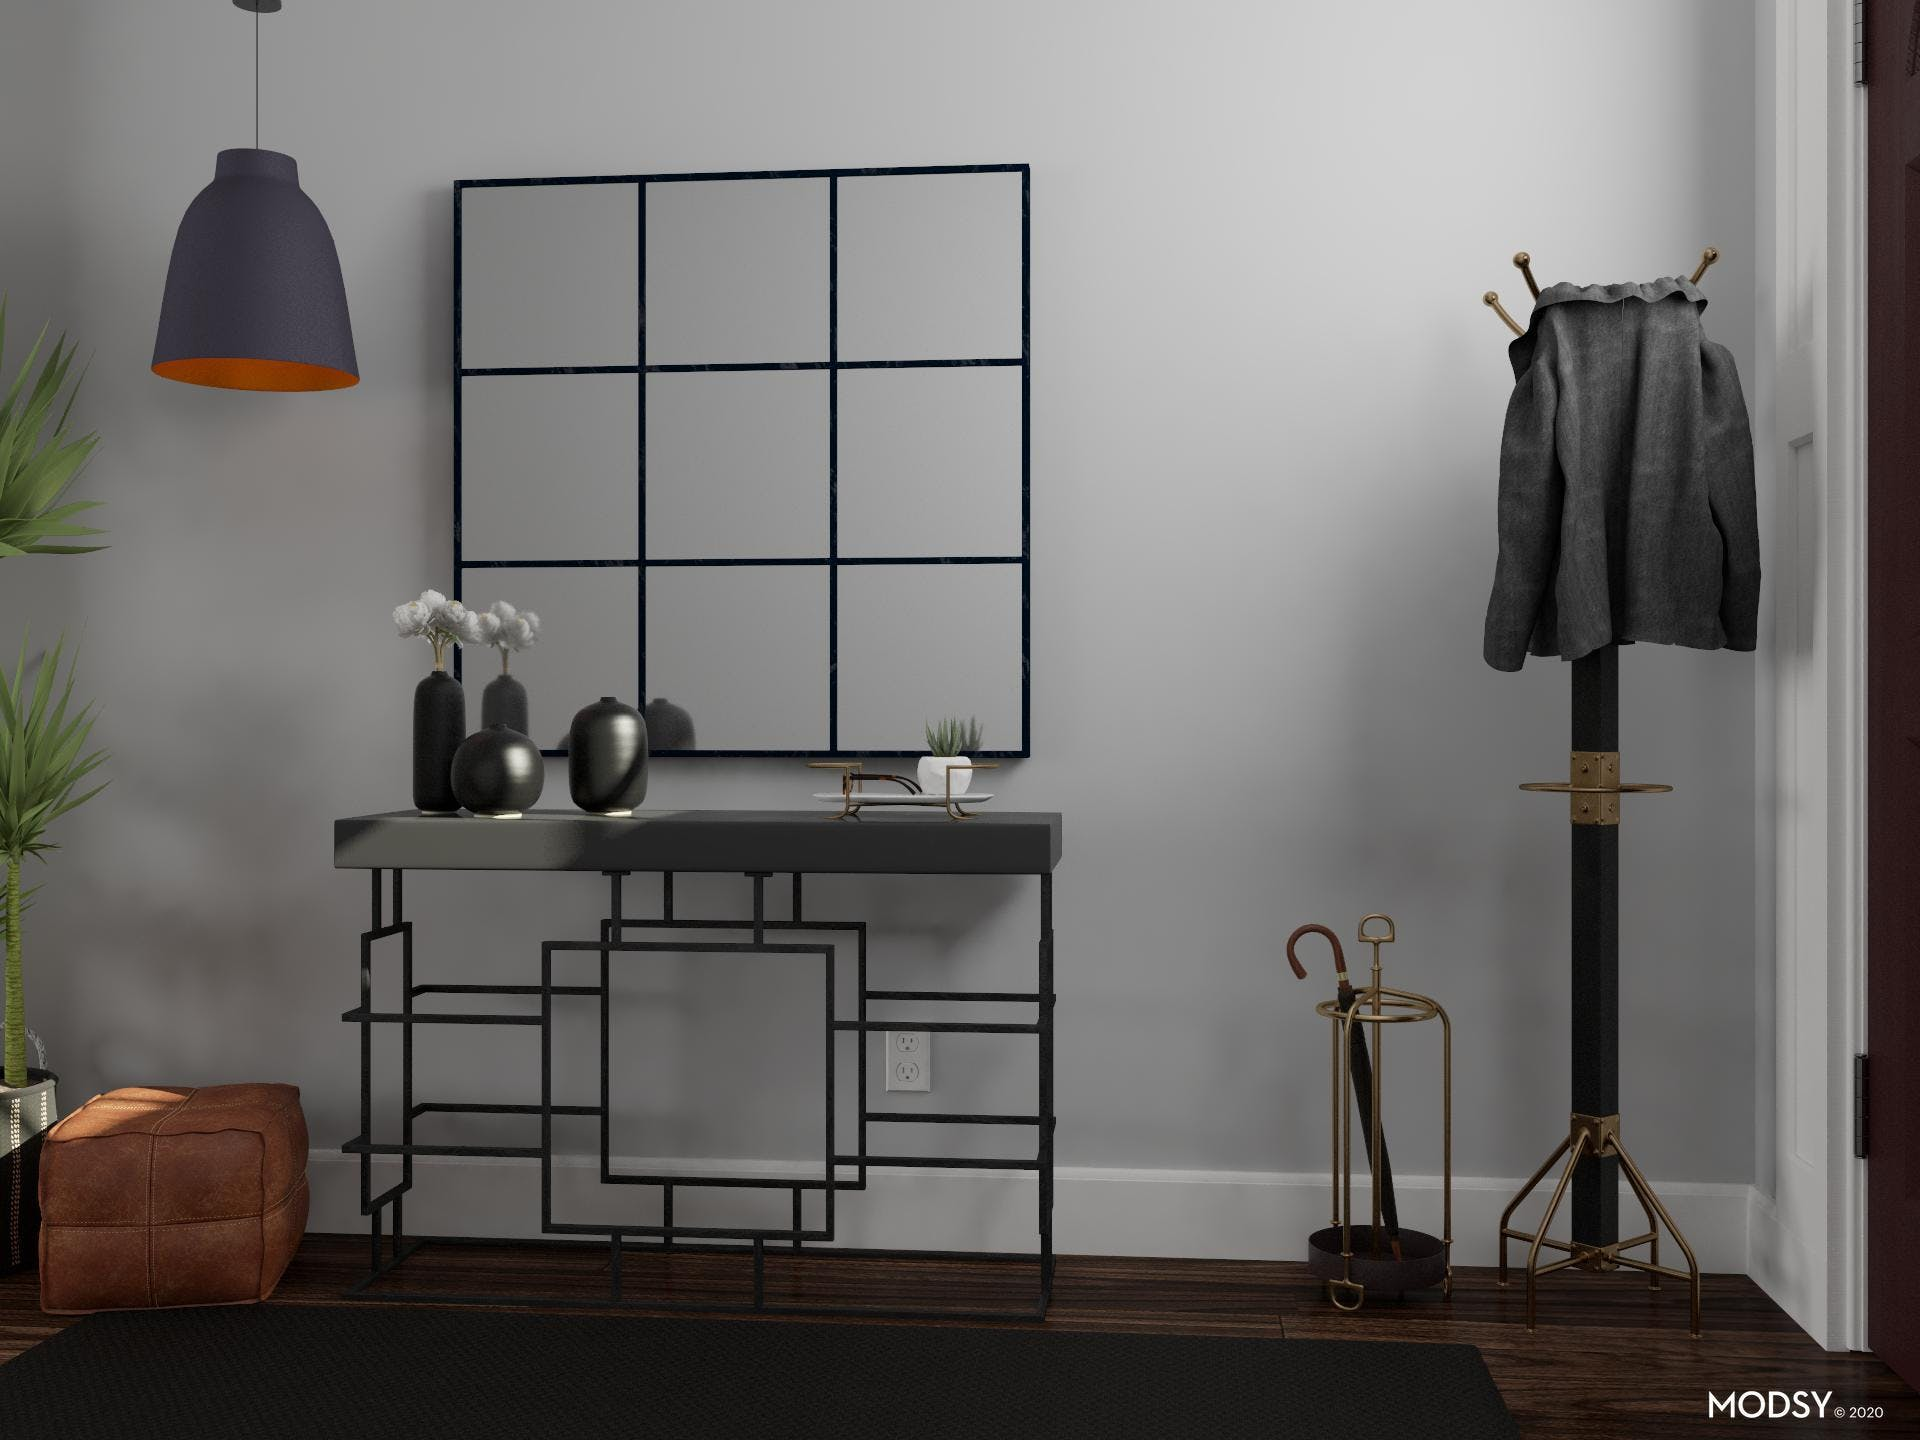 Black Vase and Comfort Seating in Industrial Entry